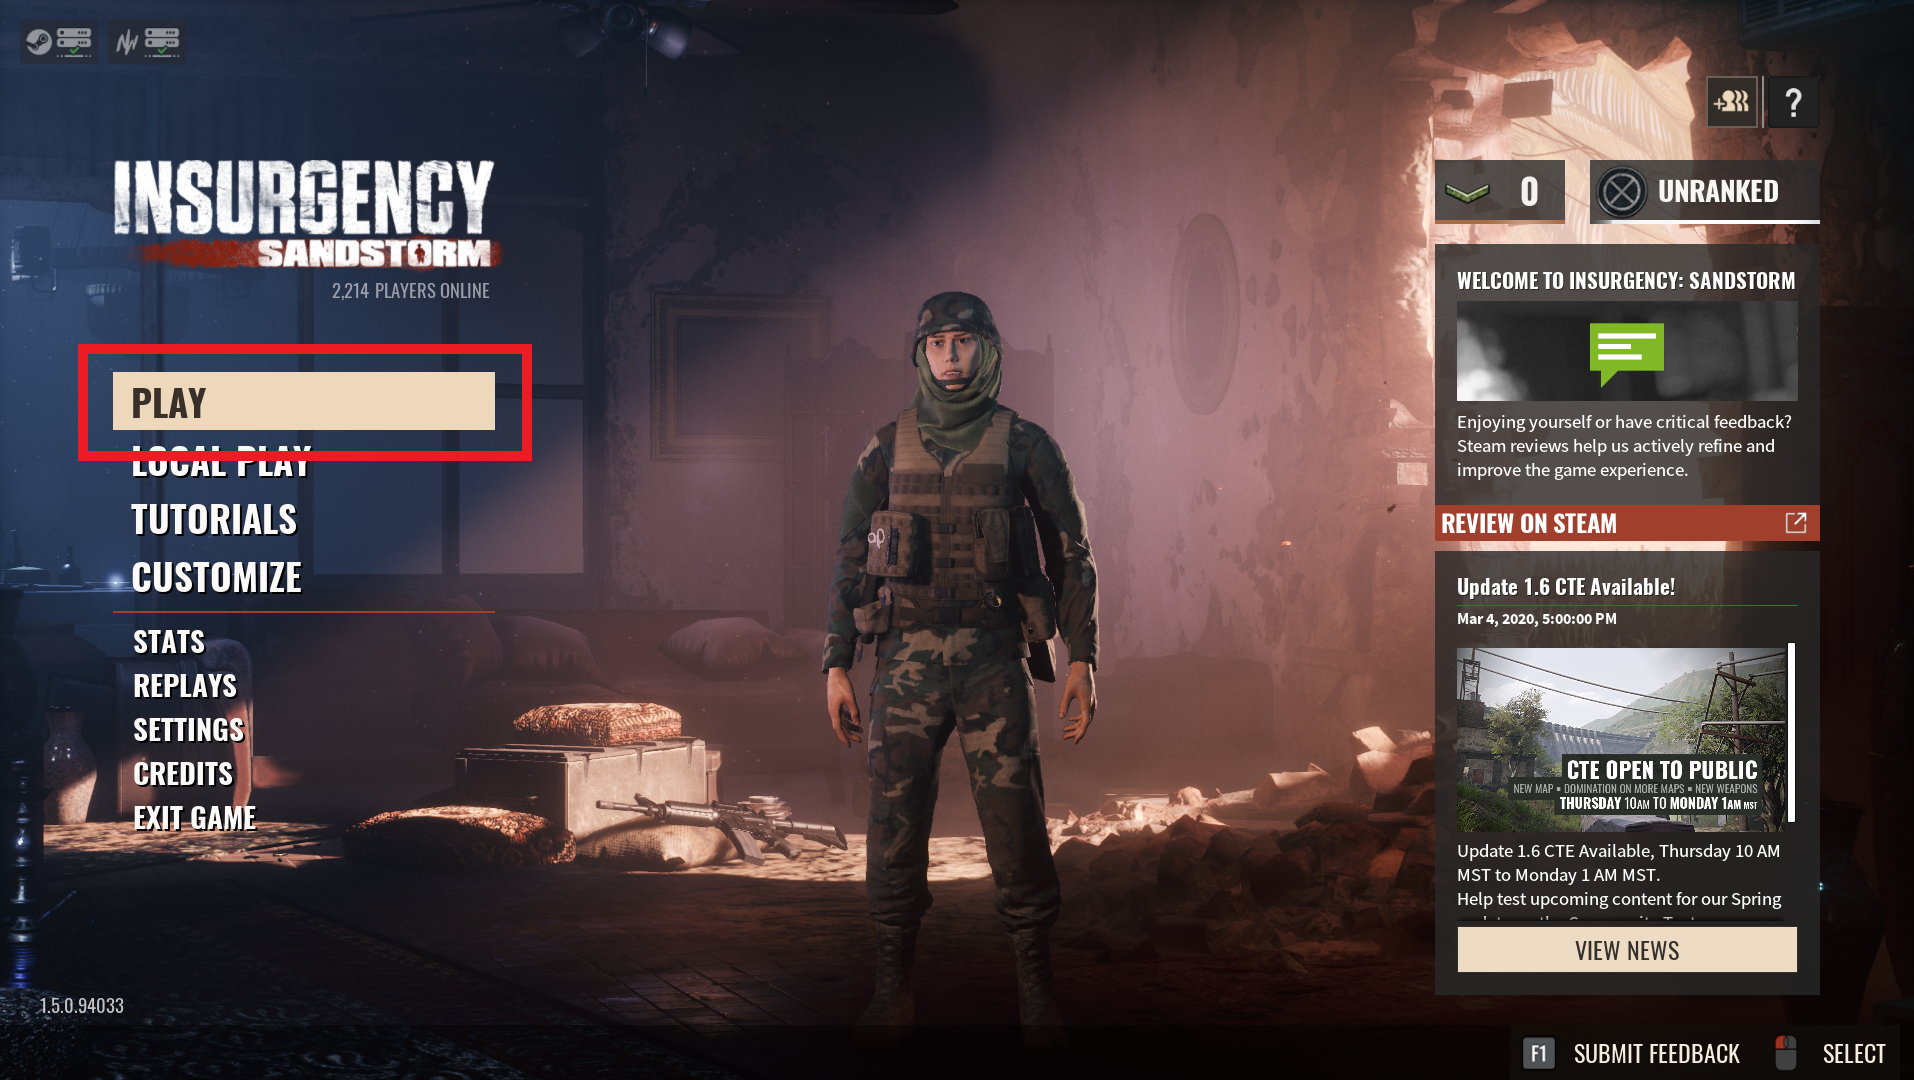 A view of the title screen of Insurgency Sandstorm